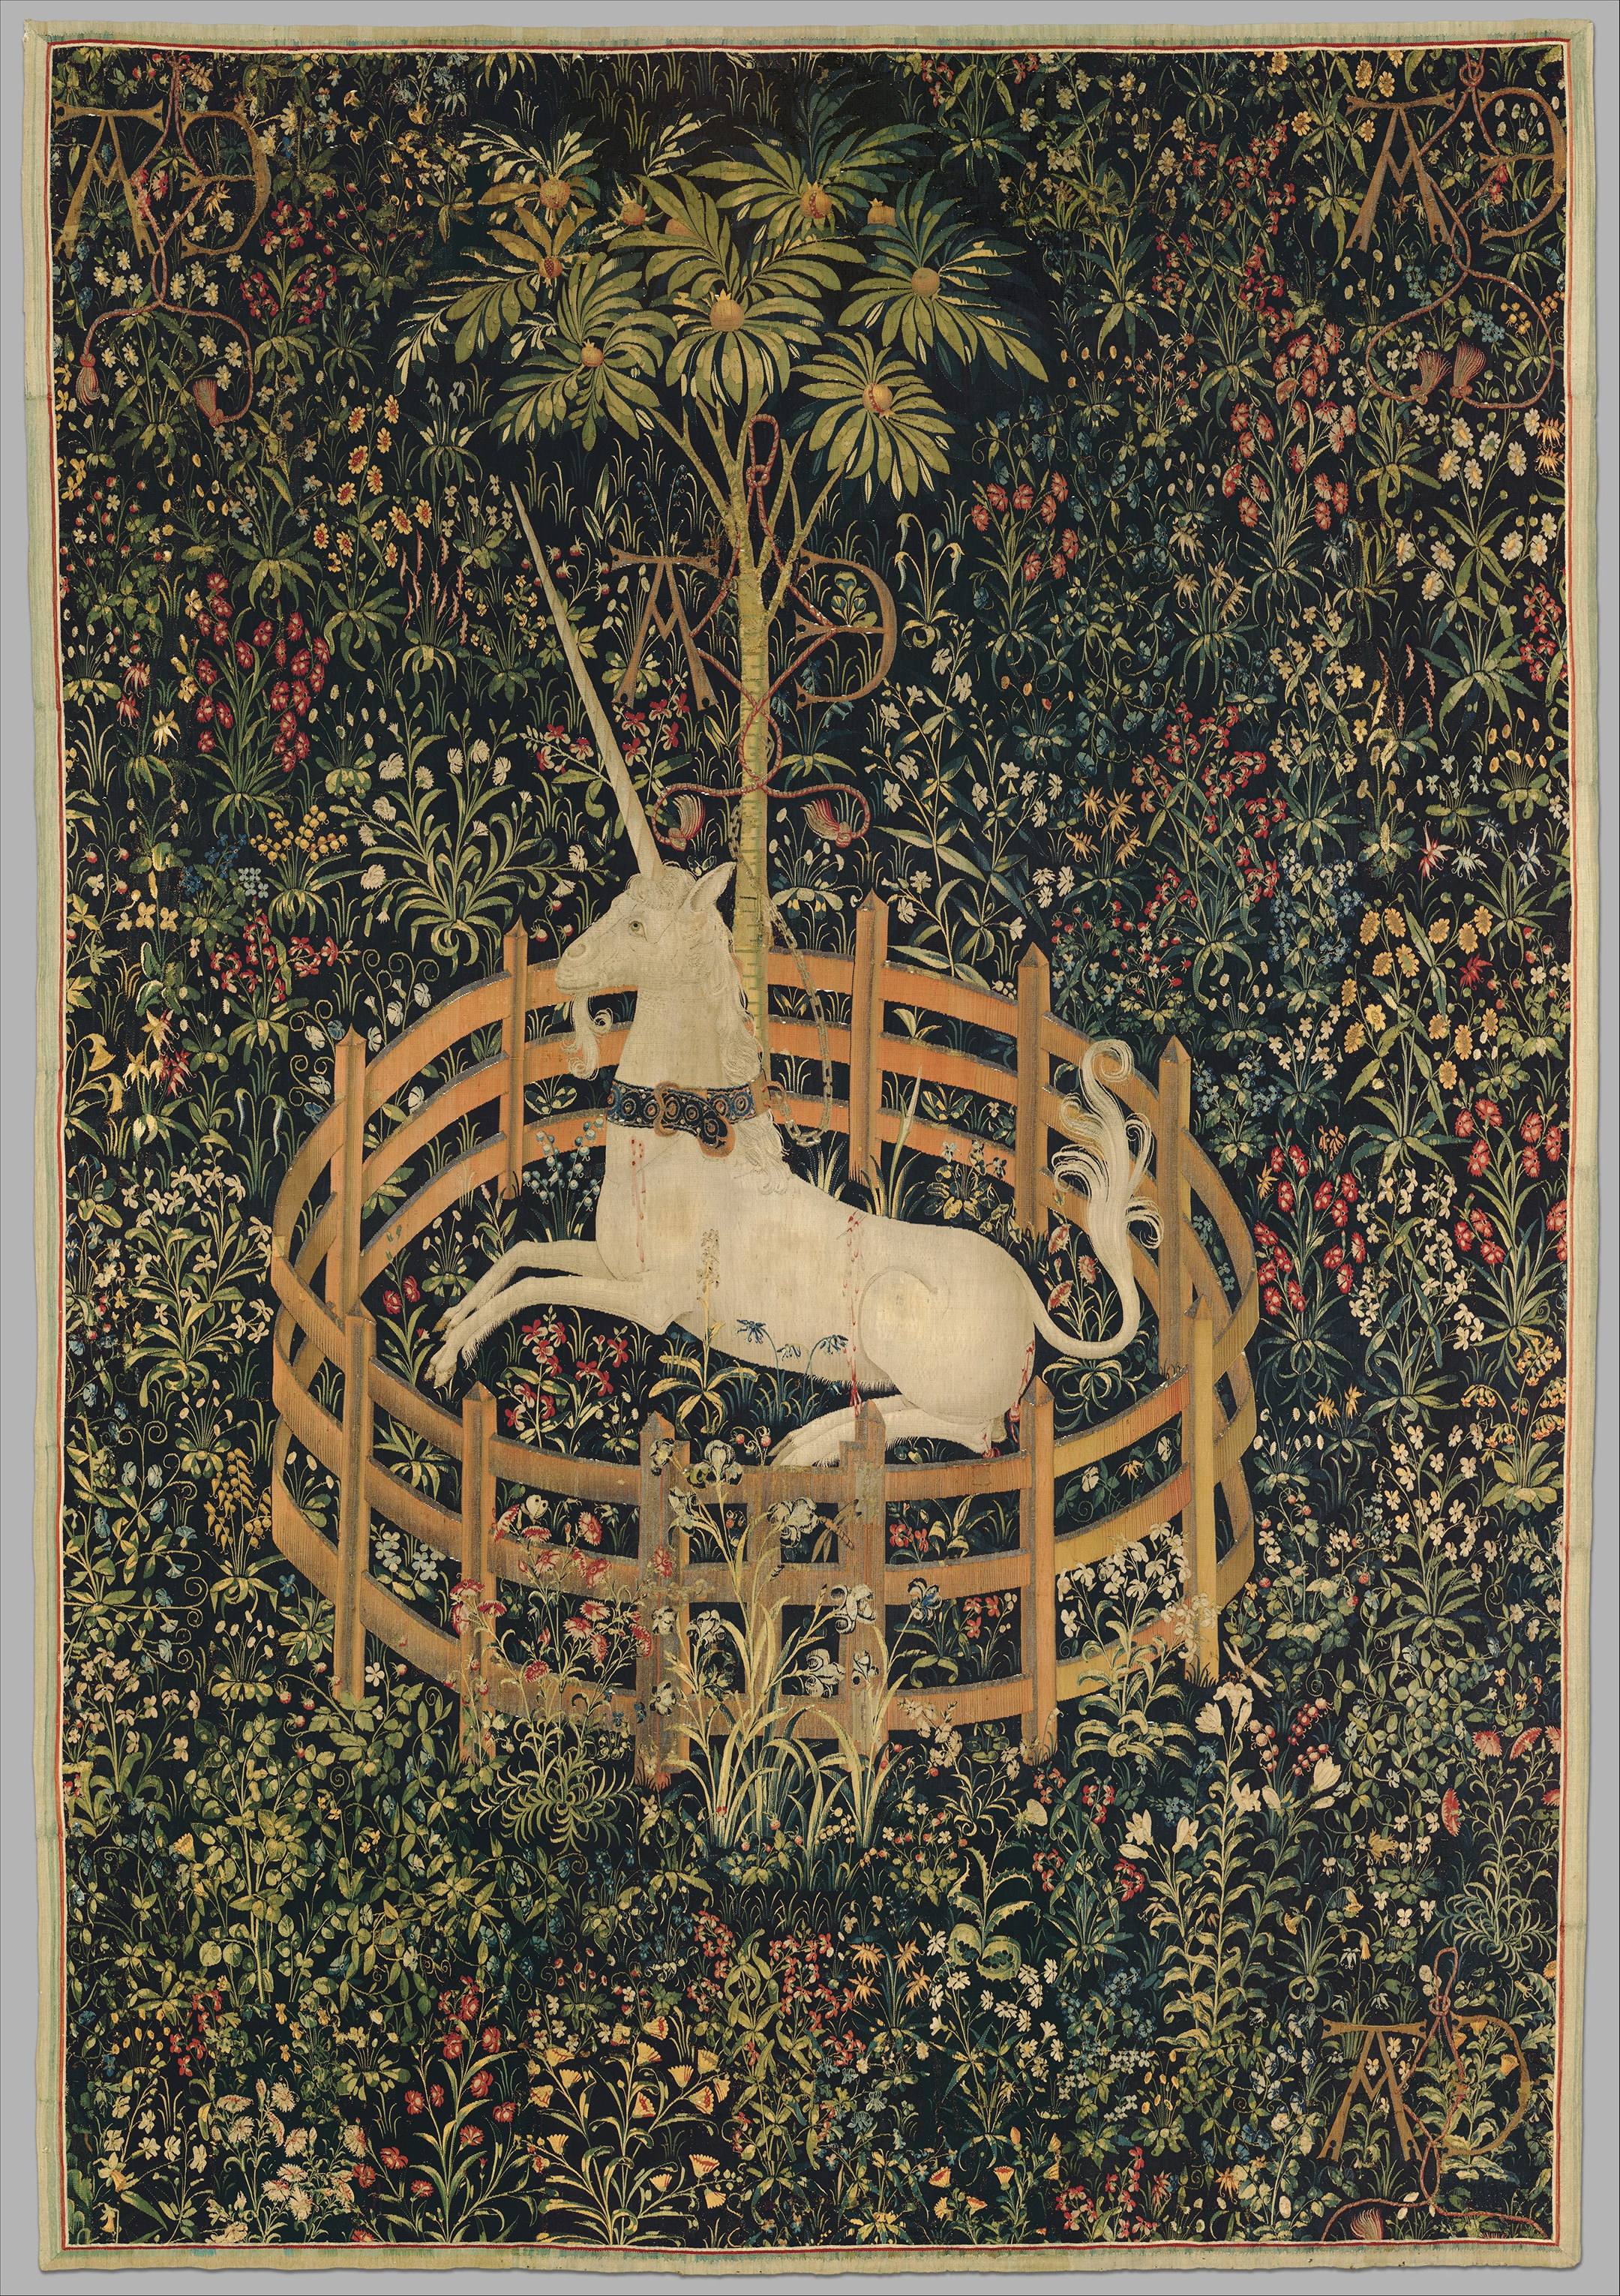 A tapestry depicting a white unicorn with a large horn in a fenced-in pen in a lush green garden